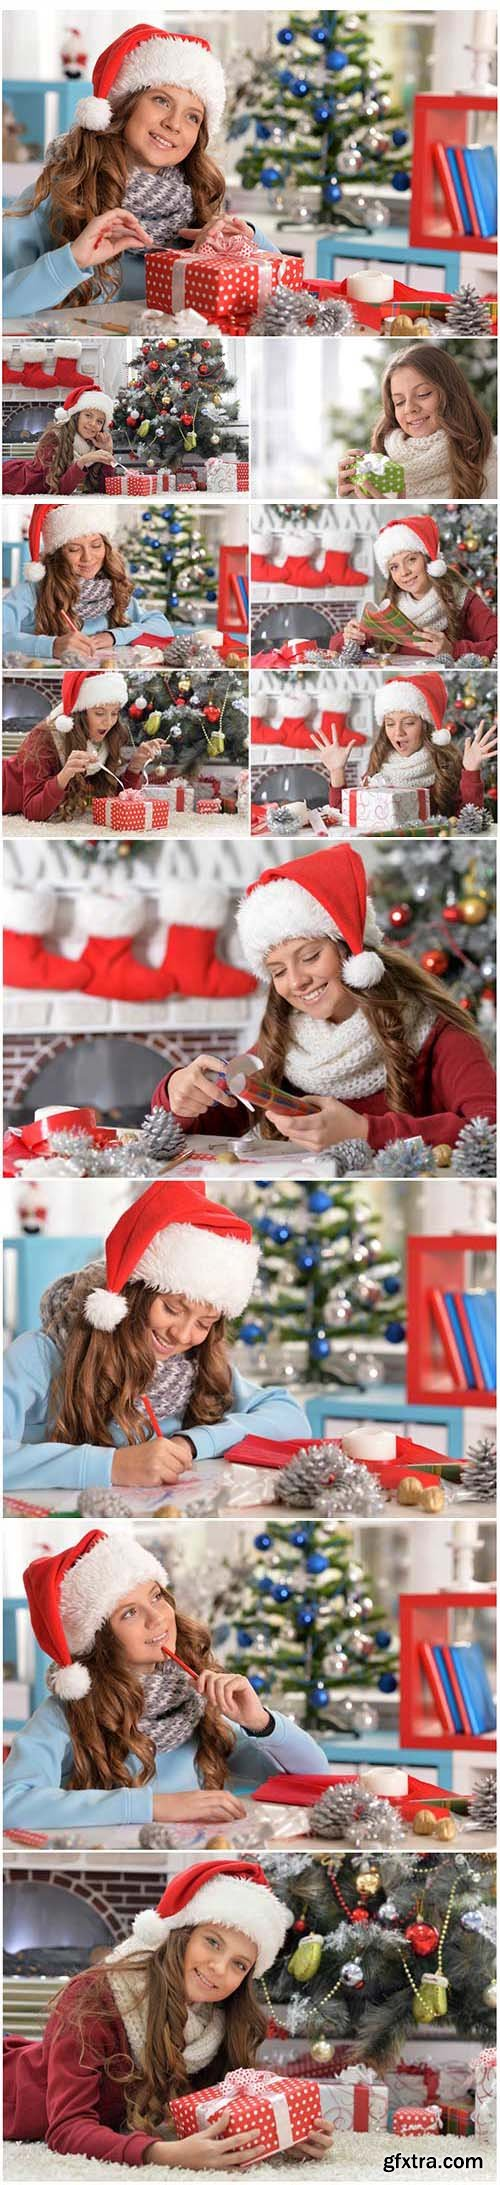 New Year and Christmas stock photos 85